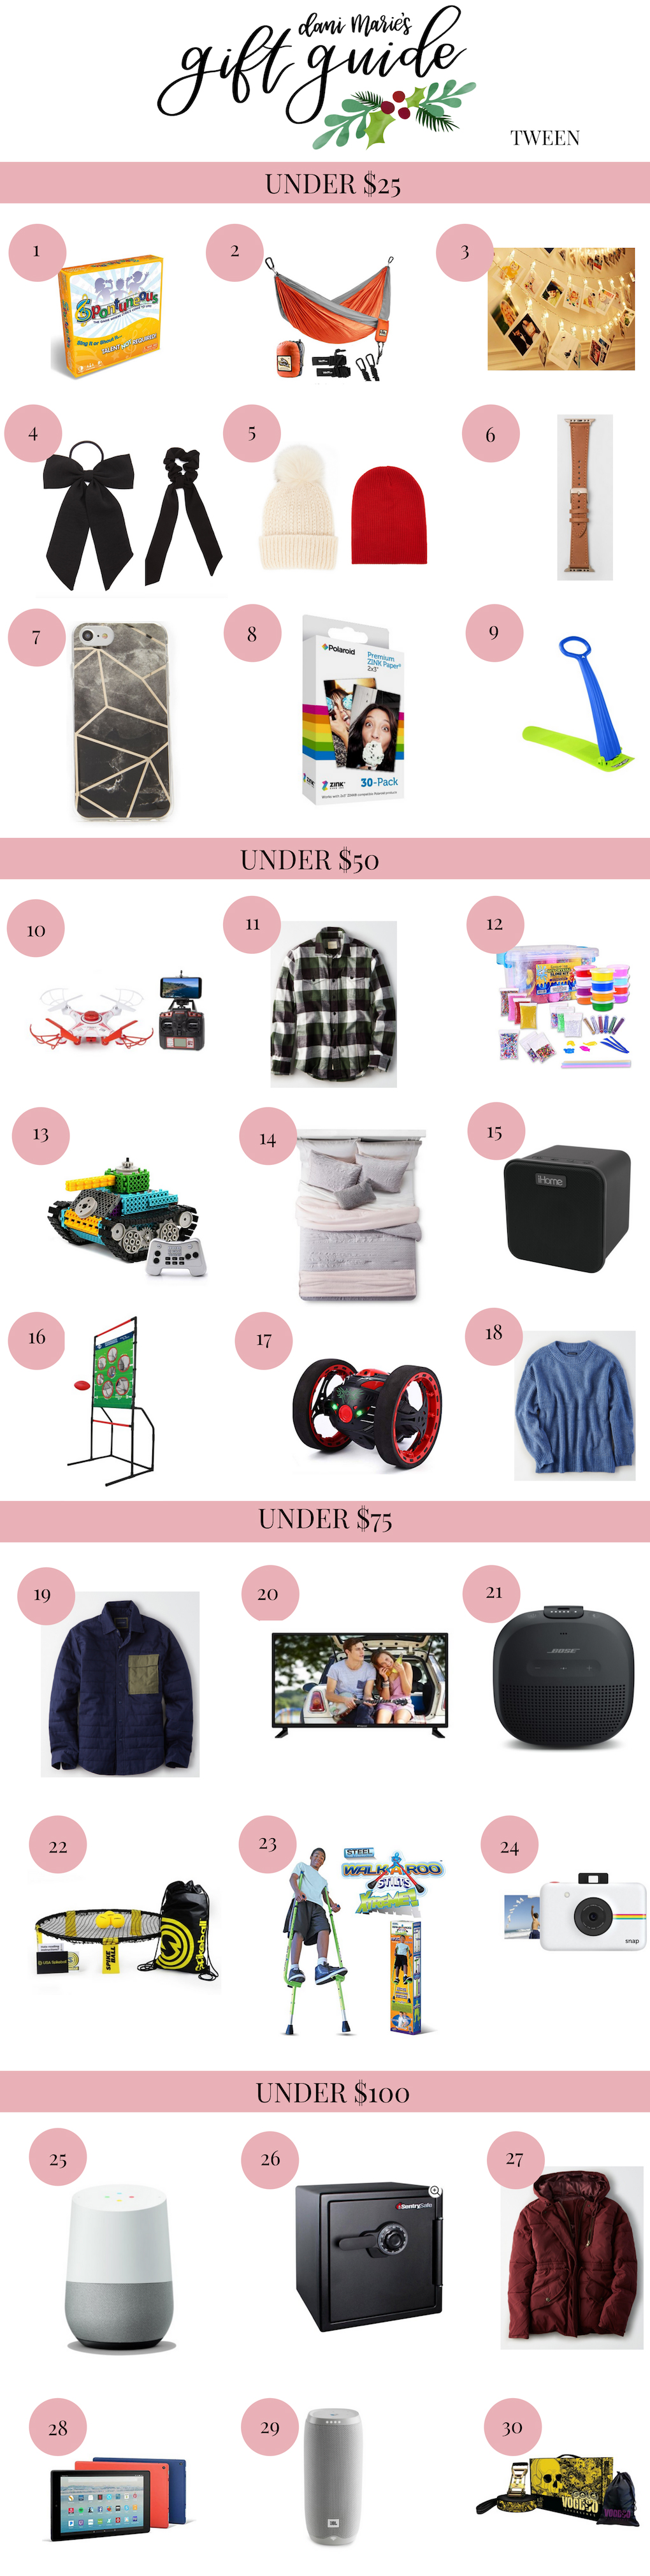 The Hard To Buy For Tween Gift Guide | Dani Marie Blog